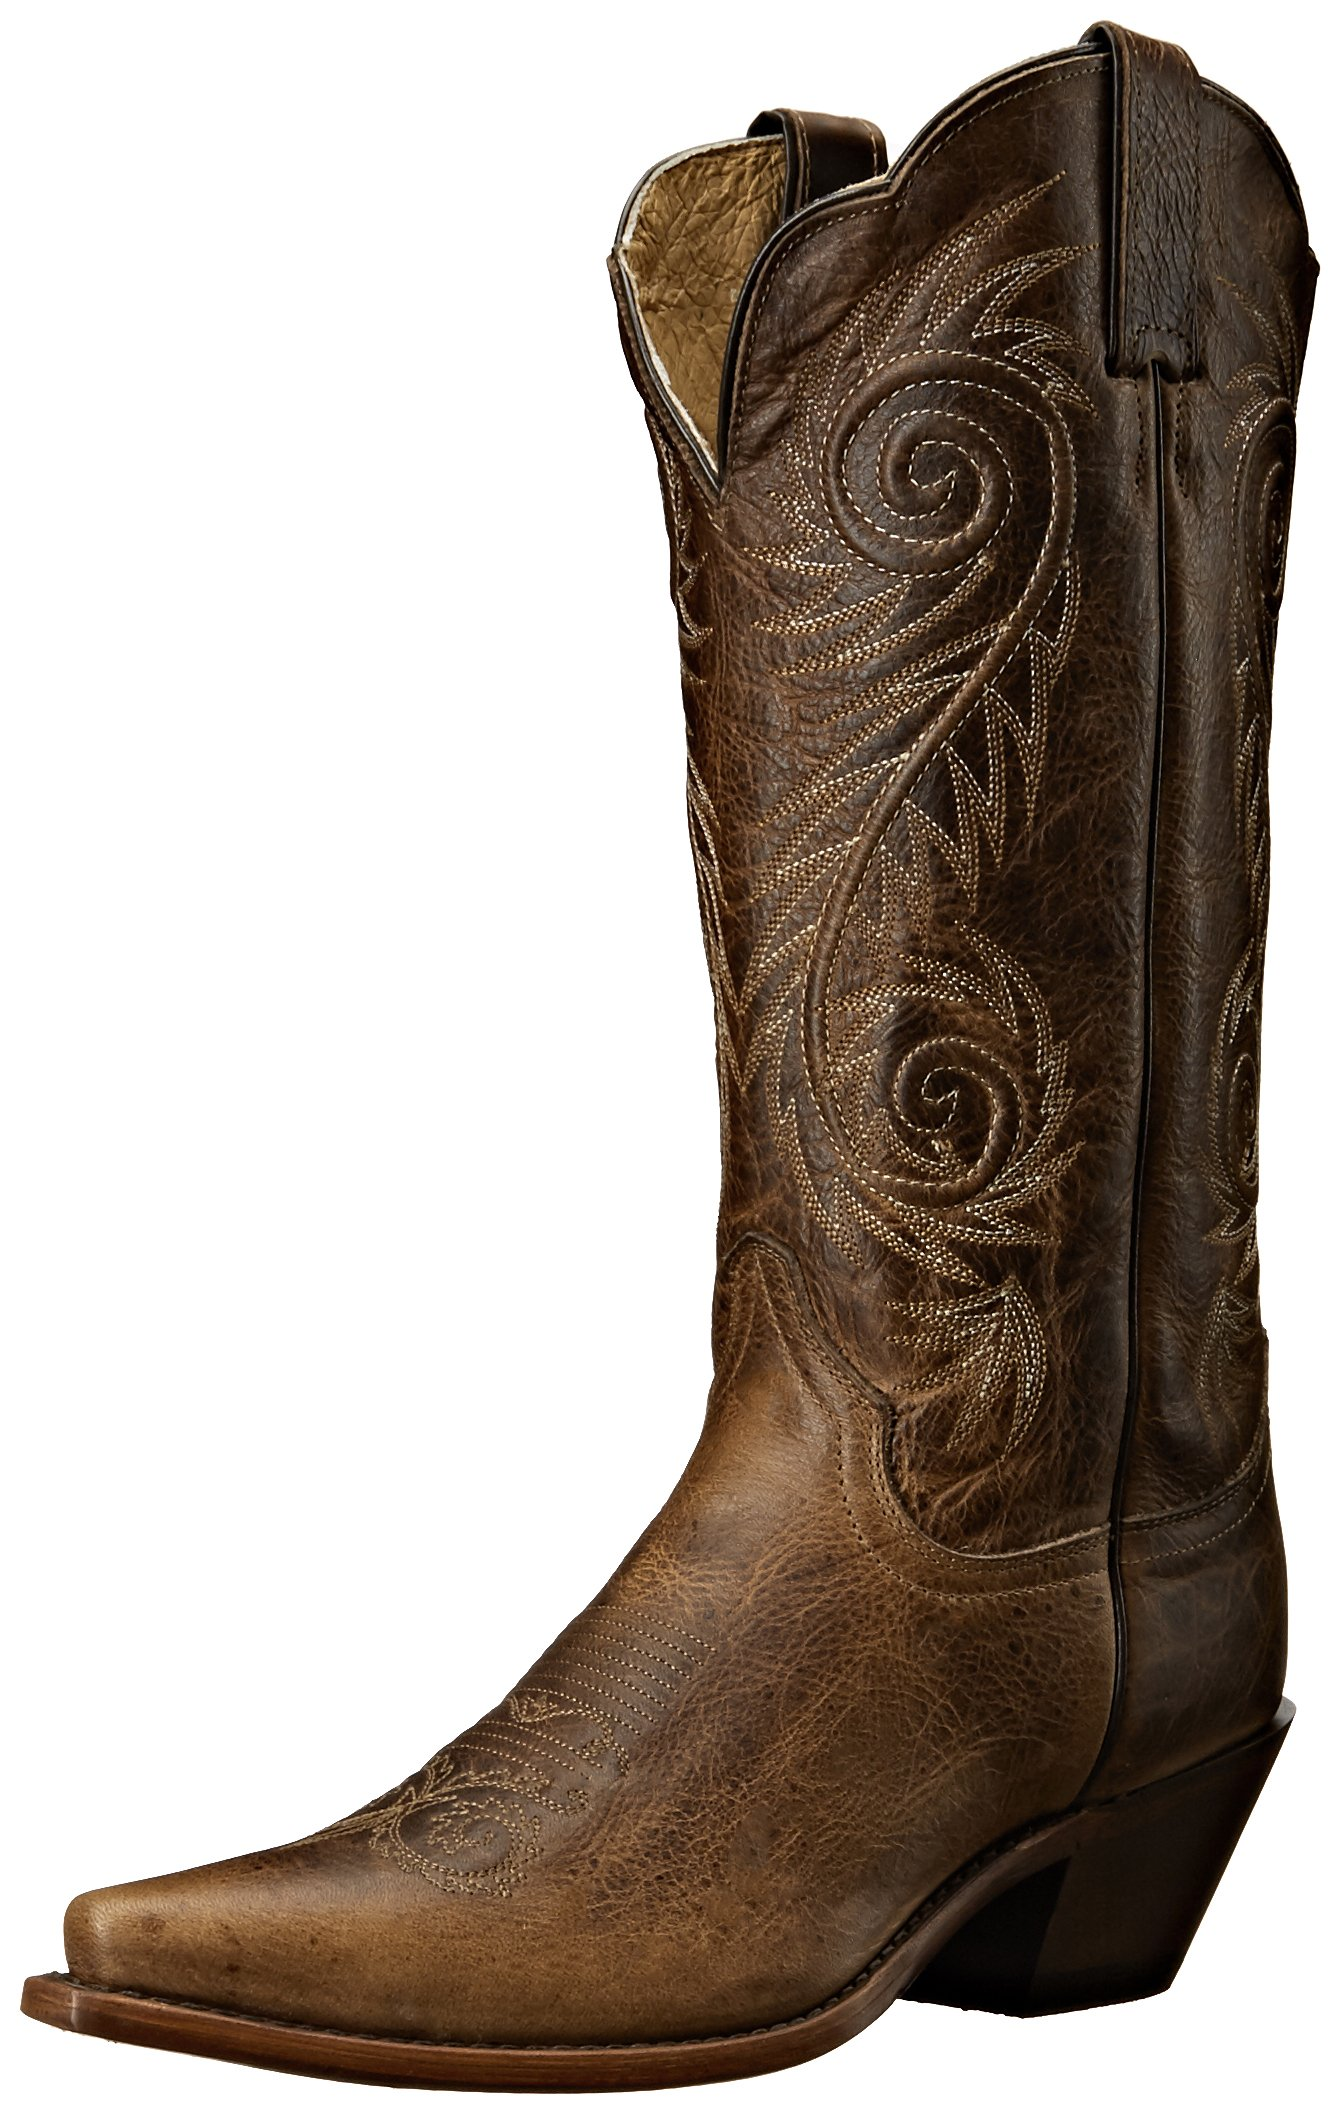 Justin Boots Women's Classic Western Boot Narrow Square Toe,Tan Damiana,9.5 B US